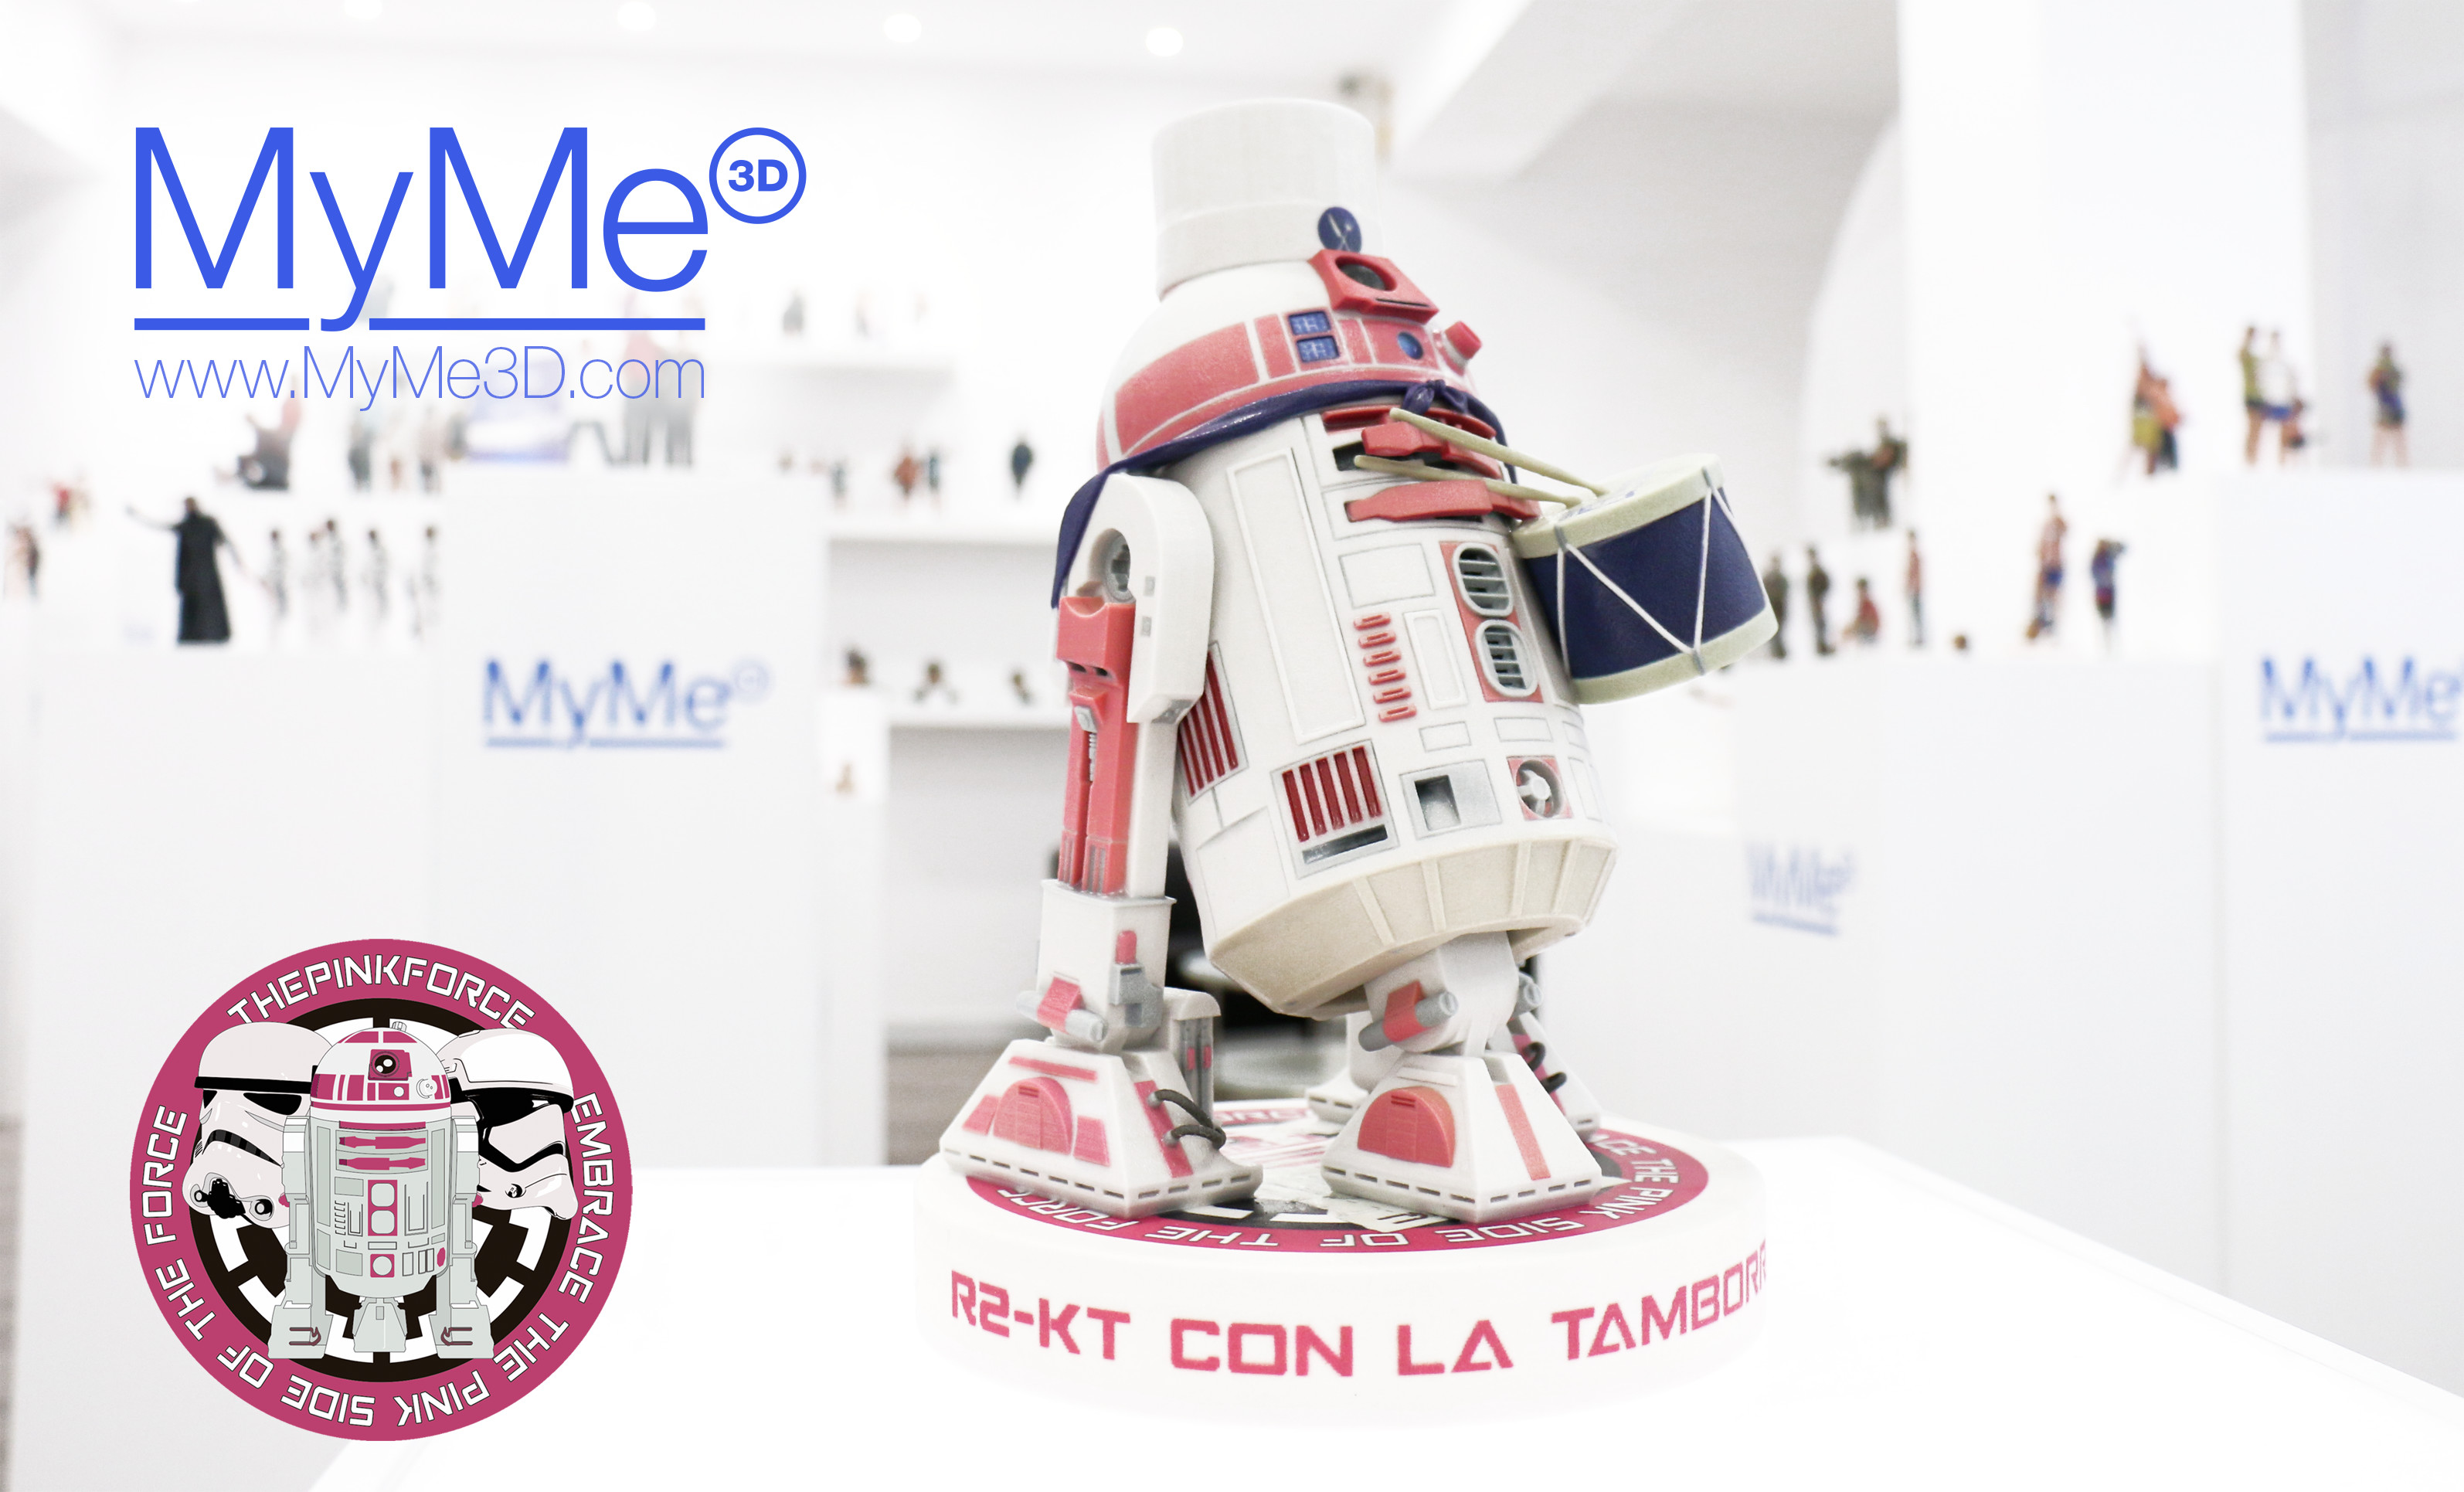 MYME3D COLABORA CON THE PINK FORCE